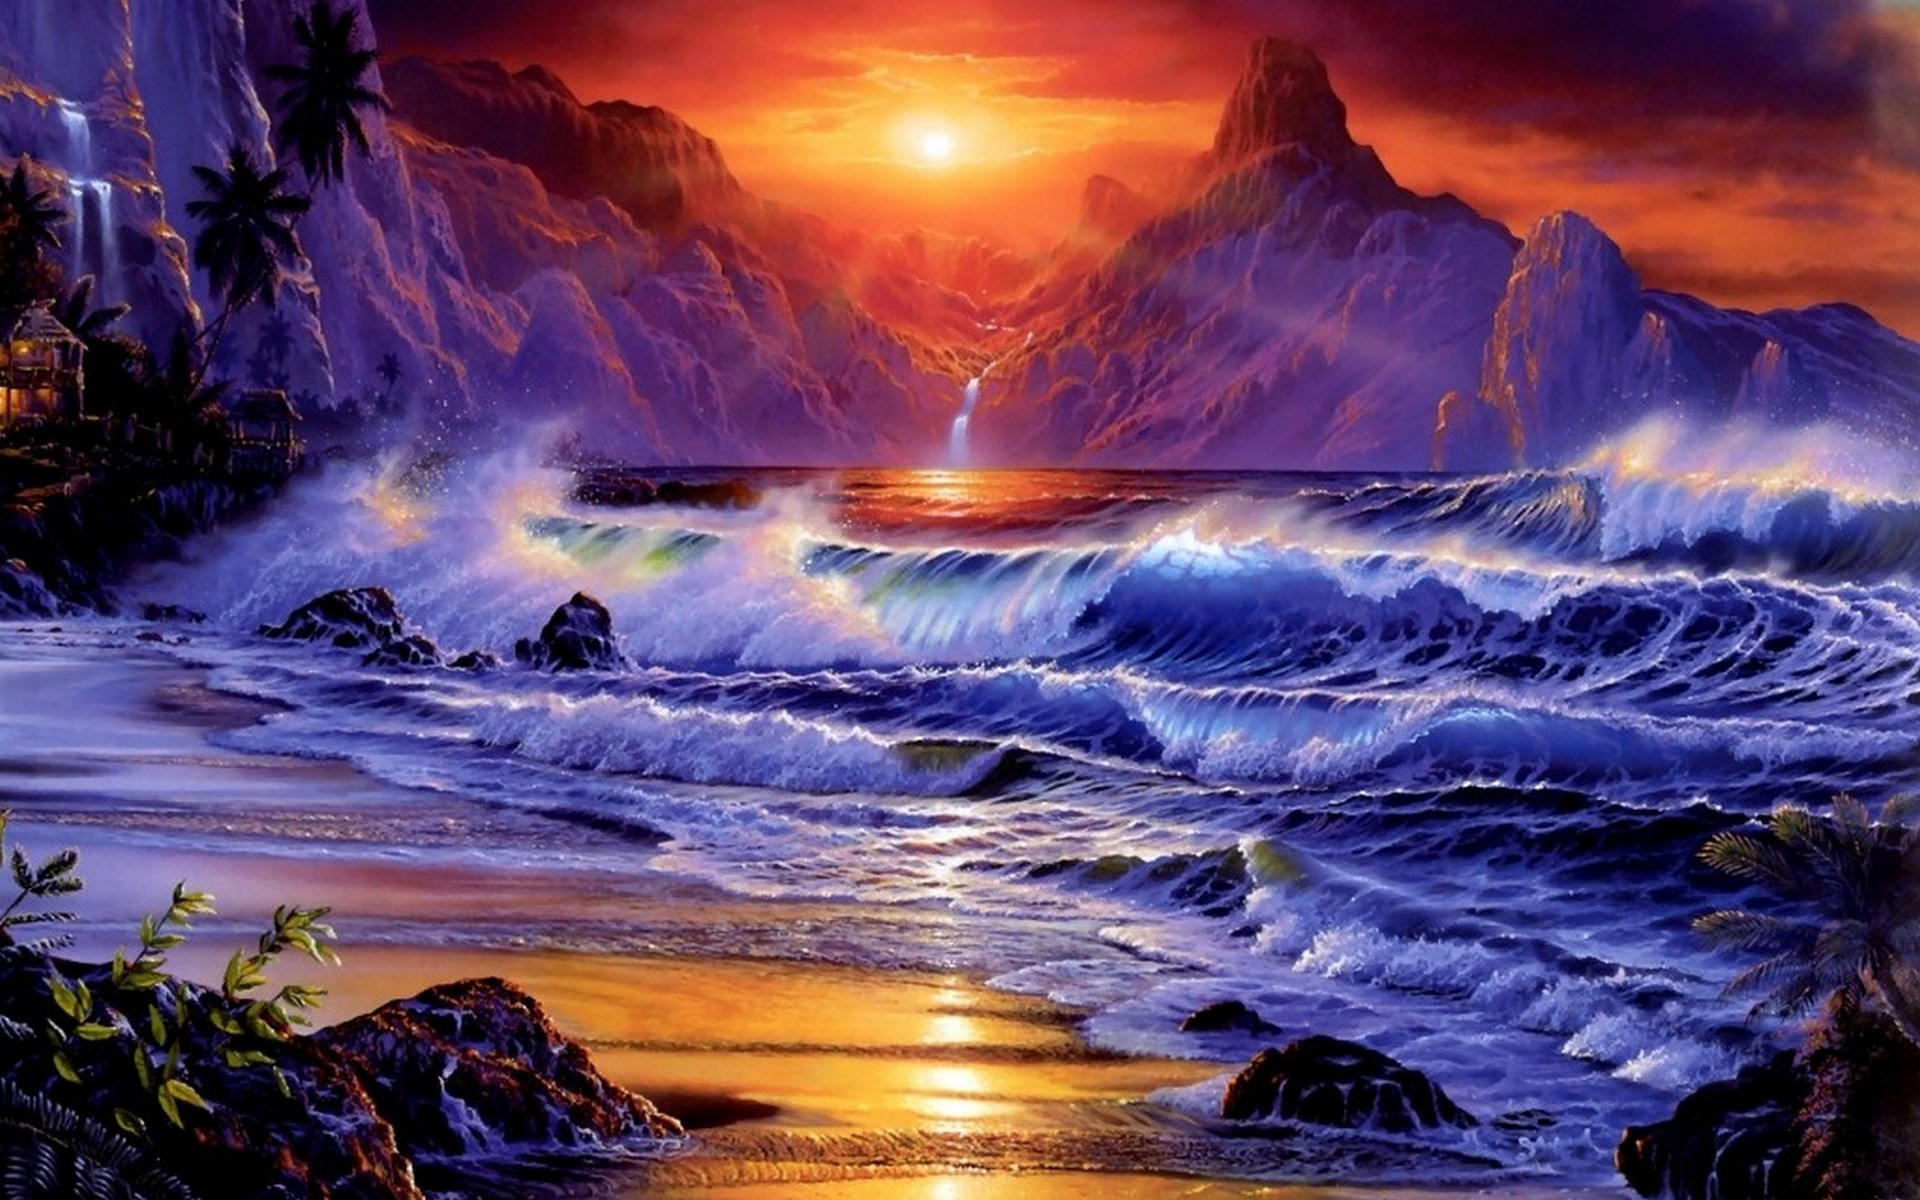 Sunset ocean waves fantasy art artwork wallpaper ...